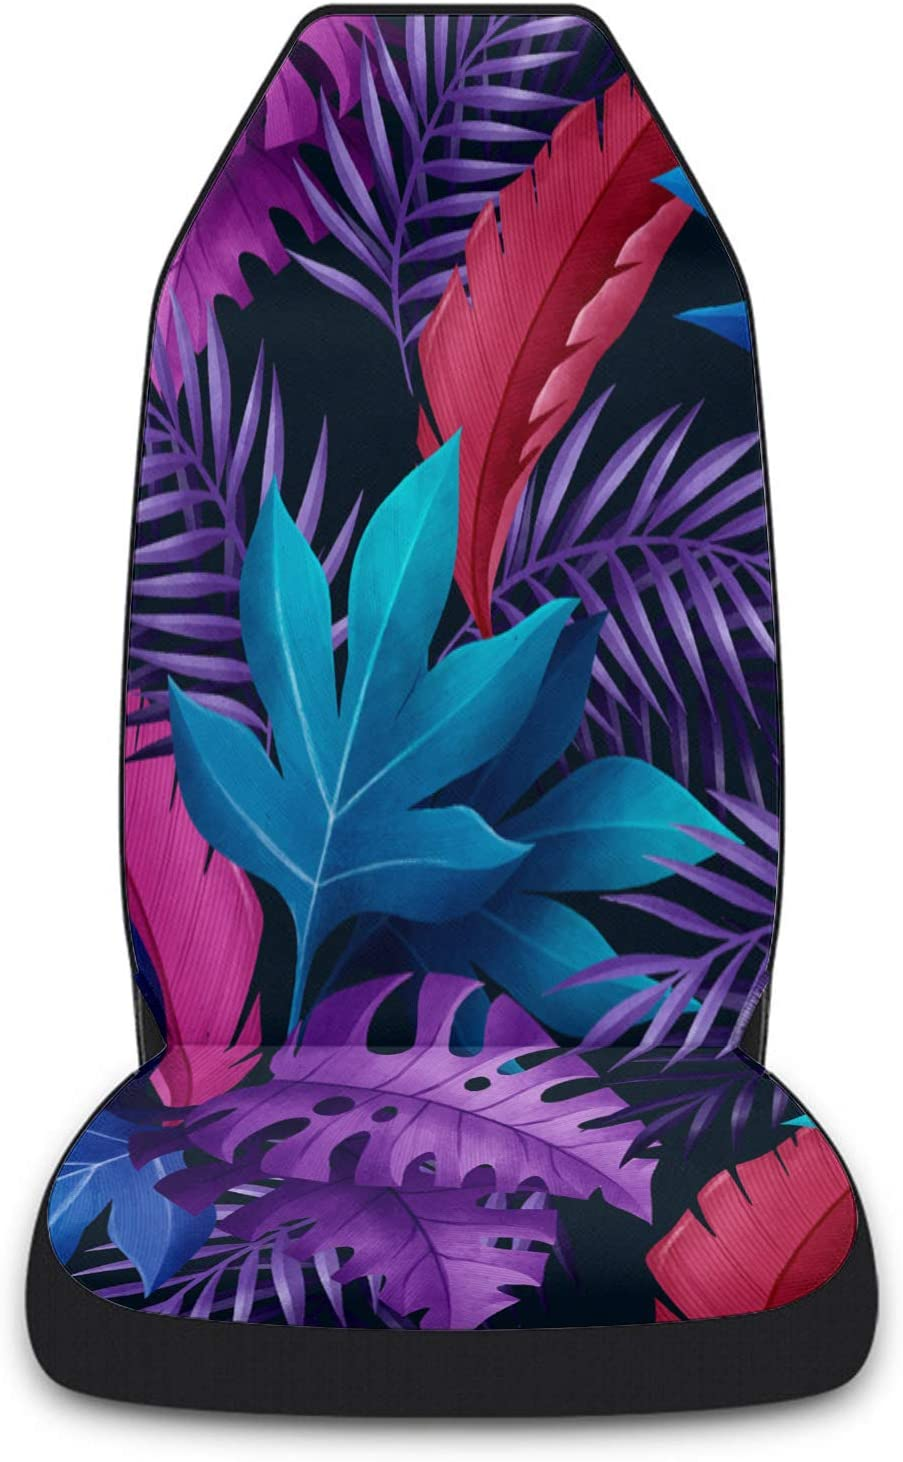 Cloud Dream Baltimore Mall Home Ranking TOP1 Car Seat Covers Tropical Plant Leaves Fr Summer